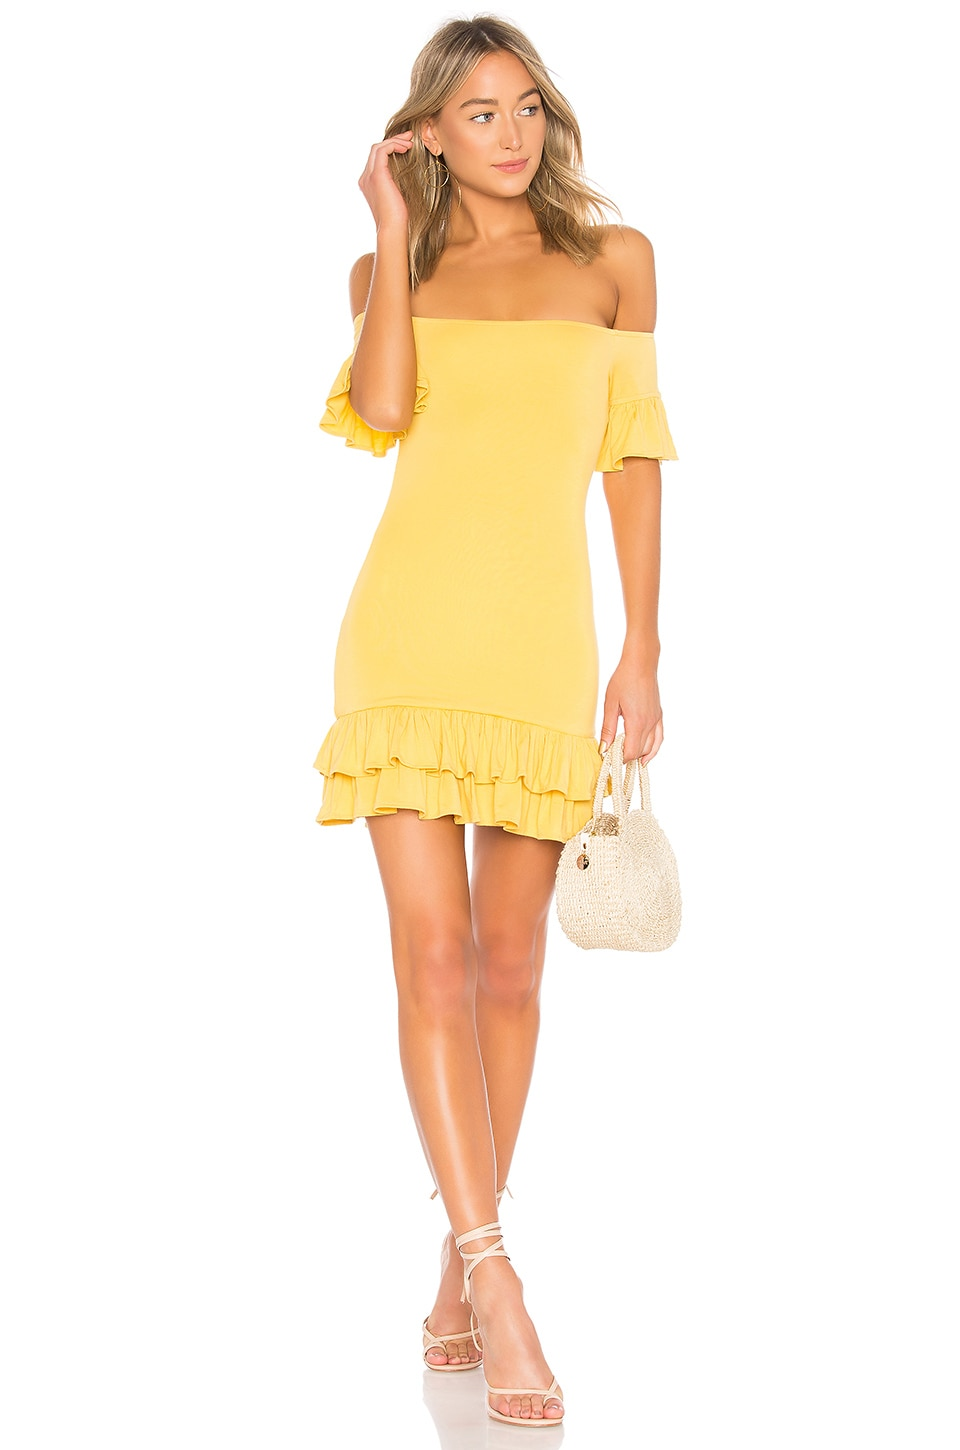 Lovers + Friends Tiger Lily Mini Dress in Blossom Yellow